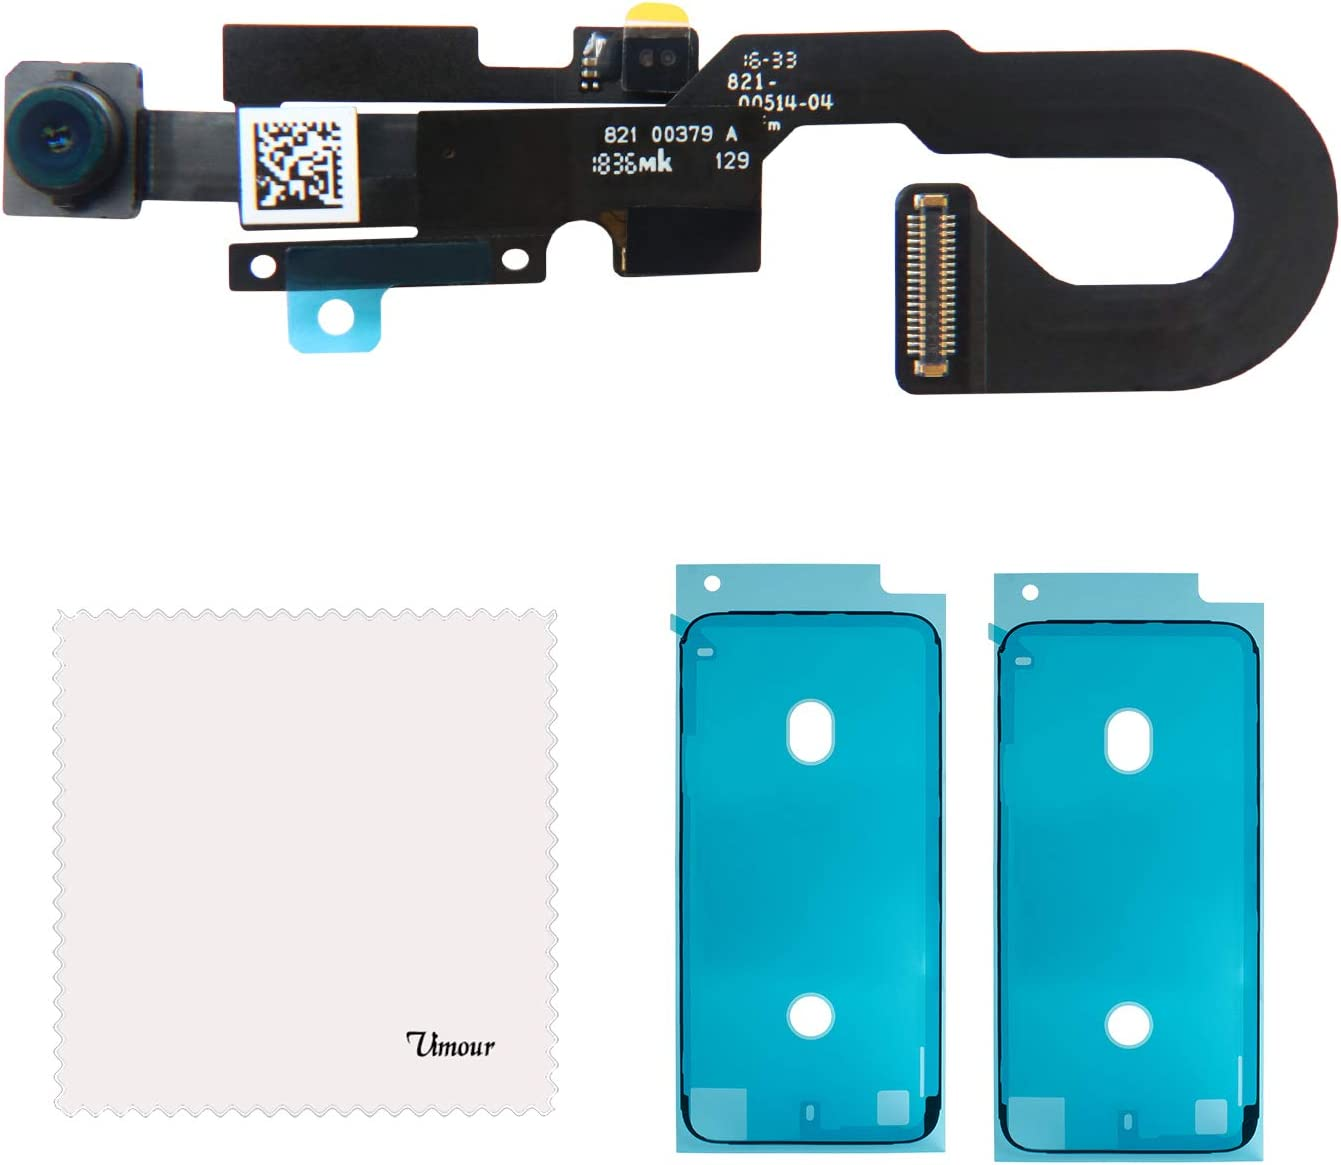 Vimour OEM Original Front Camera Proximity Light Sensor Flex Cable Ribbon Assembly Replacement for iPhone 7 4.7 Inches Model (A1660, A1778 and A1779) with 2 Pieces OEM Screen Adhesive Tapes